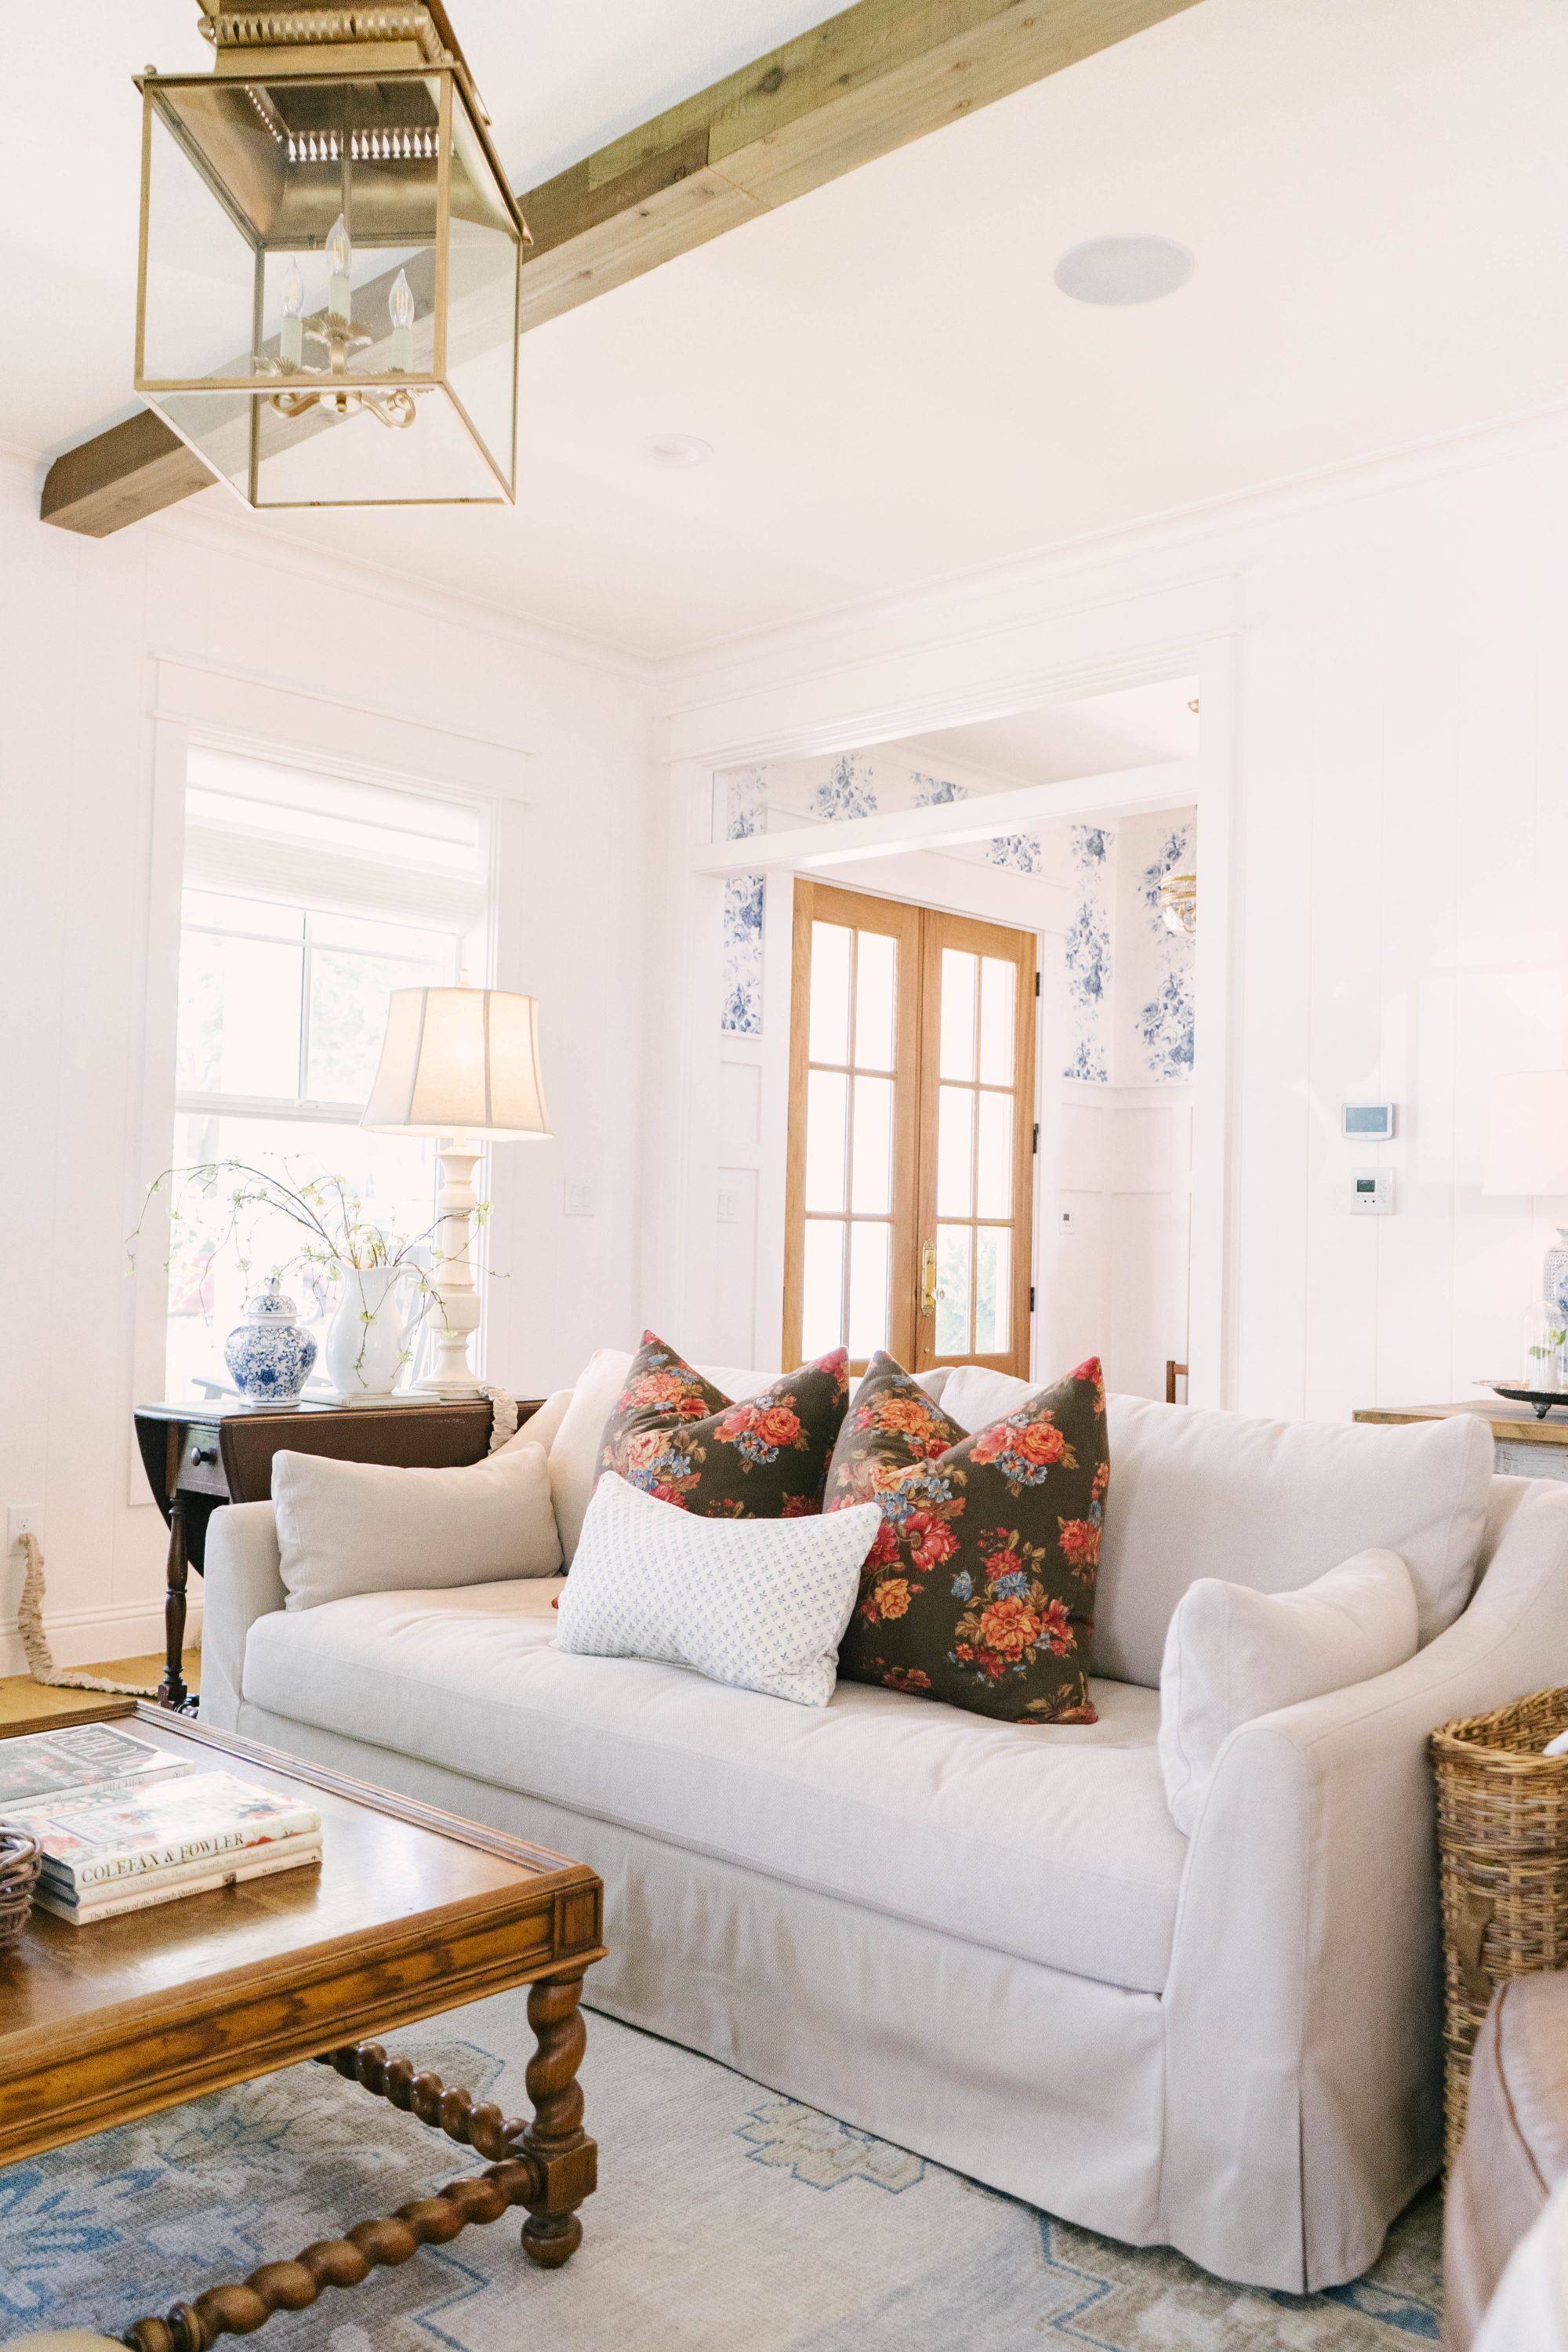 Classic Farmhouse Home Tour - Living Room - Wood Beams - Sherwin Williams Marshmallow